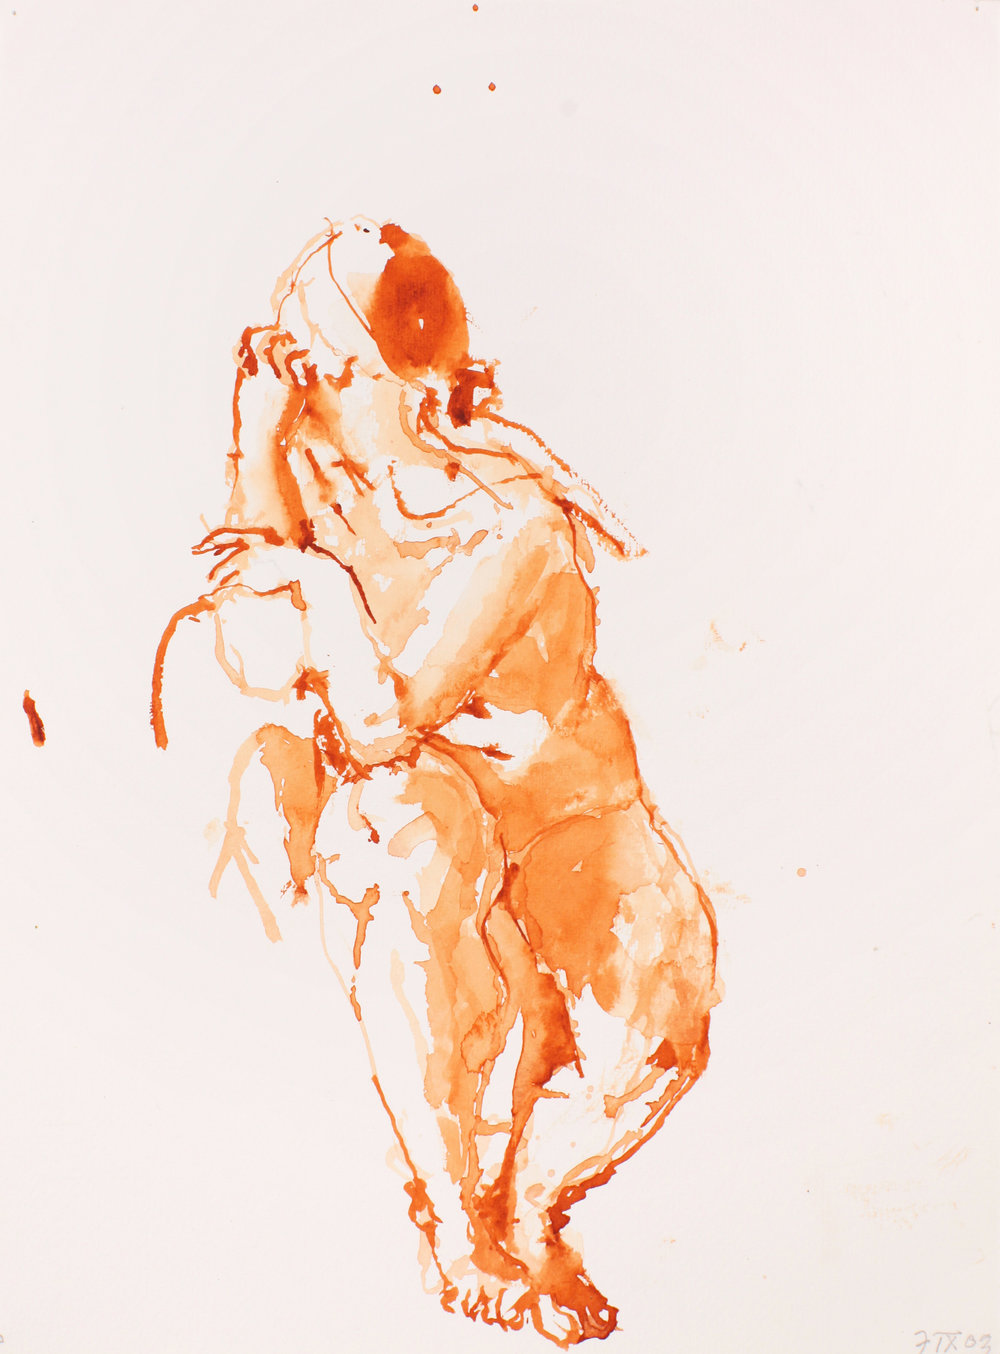 2003_Crouching_Nude_Turned_to_Left_watercolour_on_paper_15x11in_38x28cm_WPF033.jpg